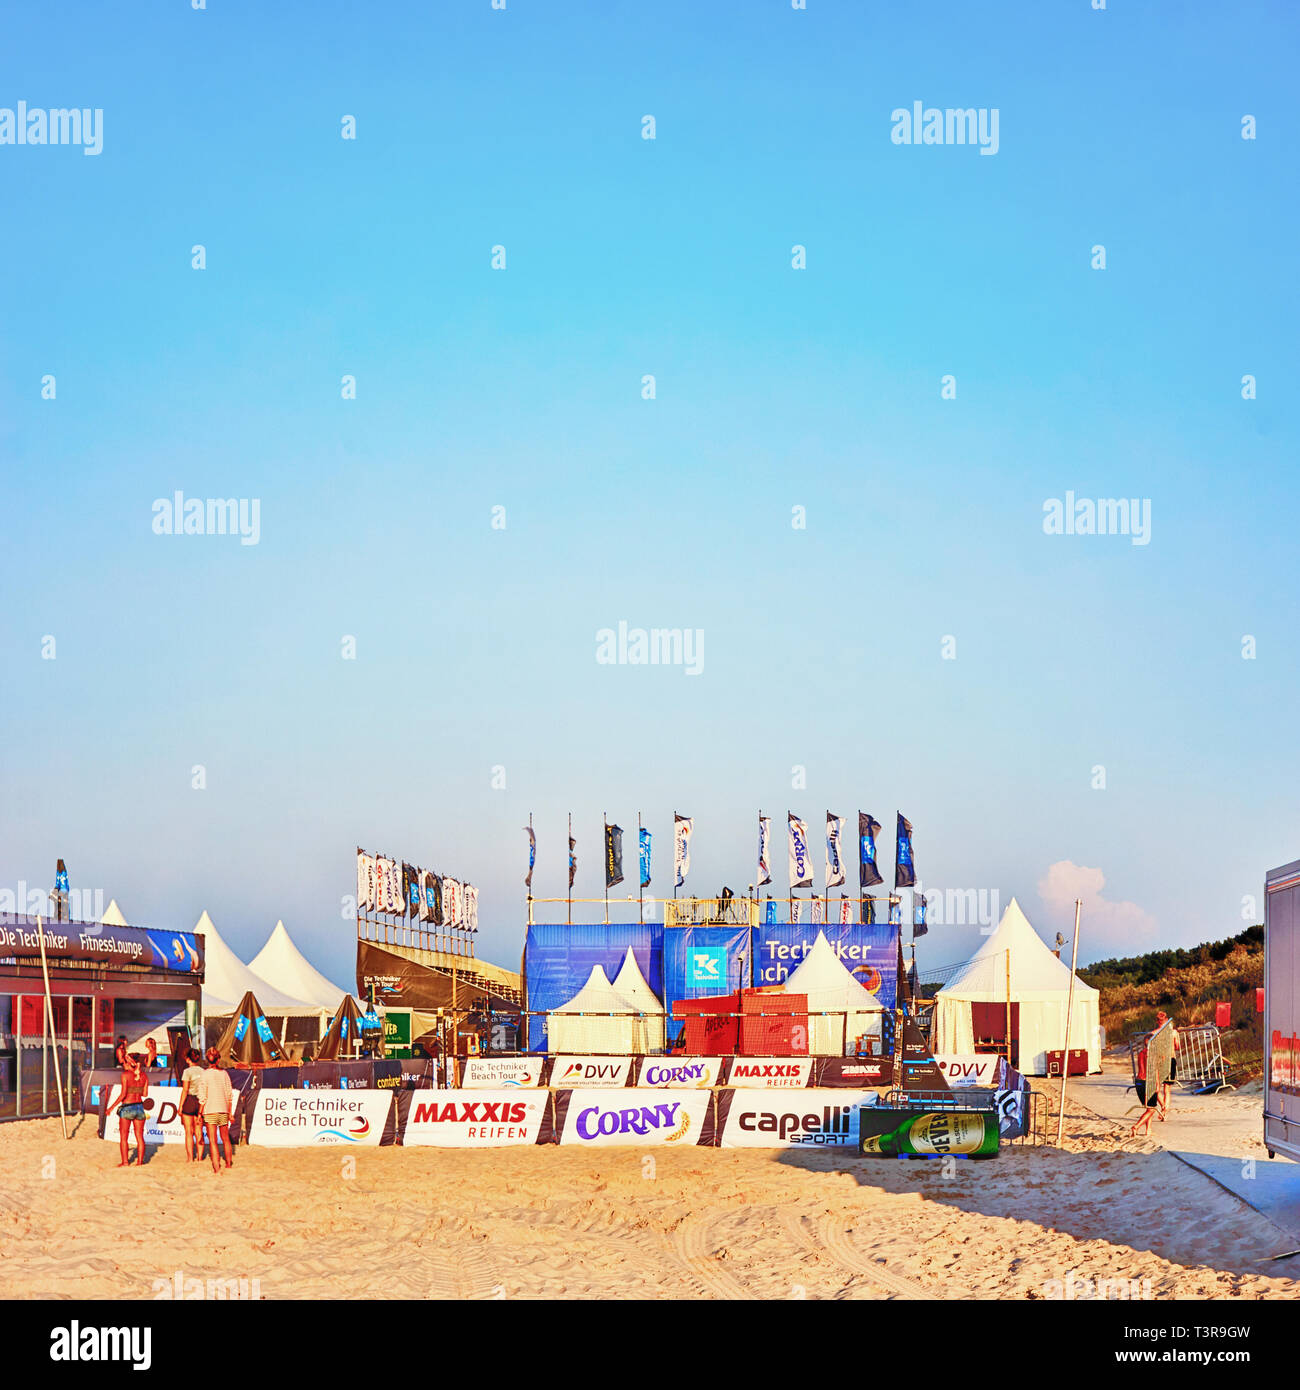 Advertising signs on the beach at a beach volleyball tournament. Jever, Corny, Maxxis, Die Techniker, DVV, capelli - Stock Image